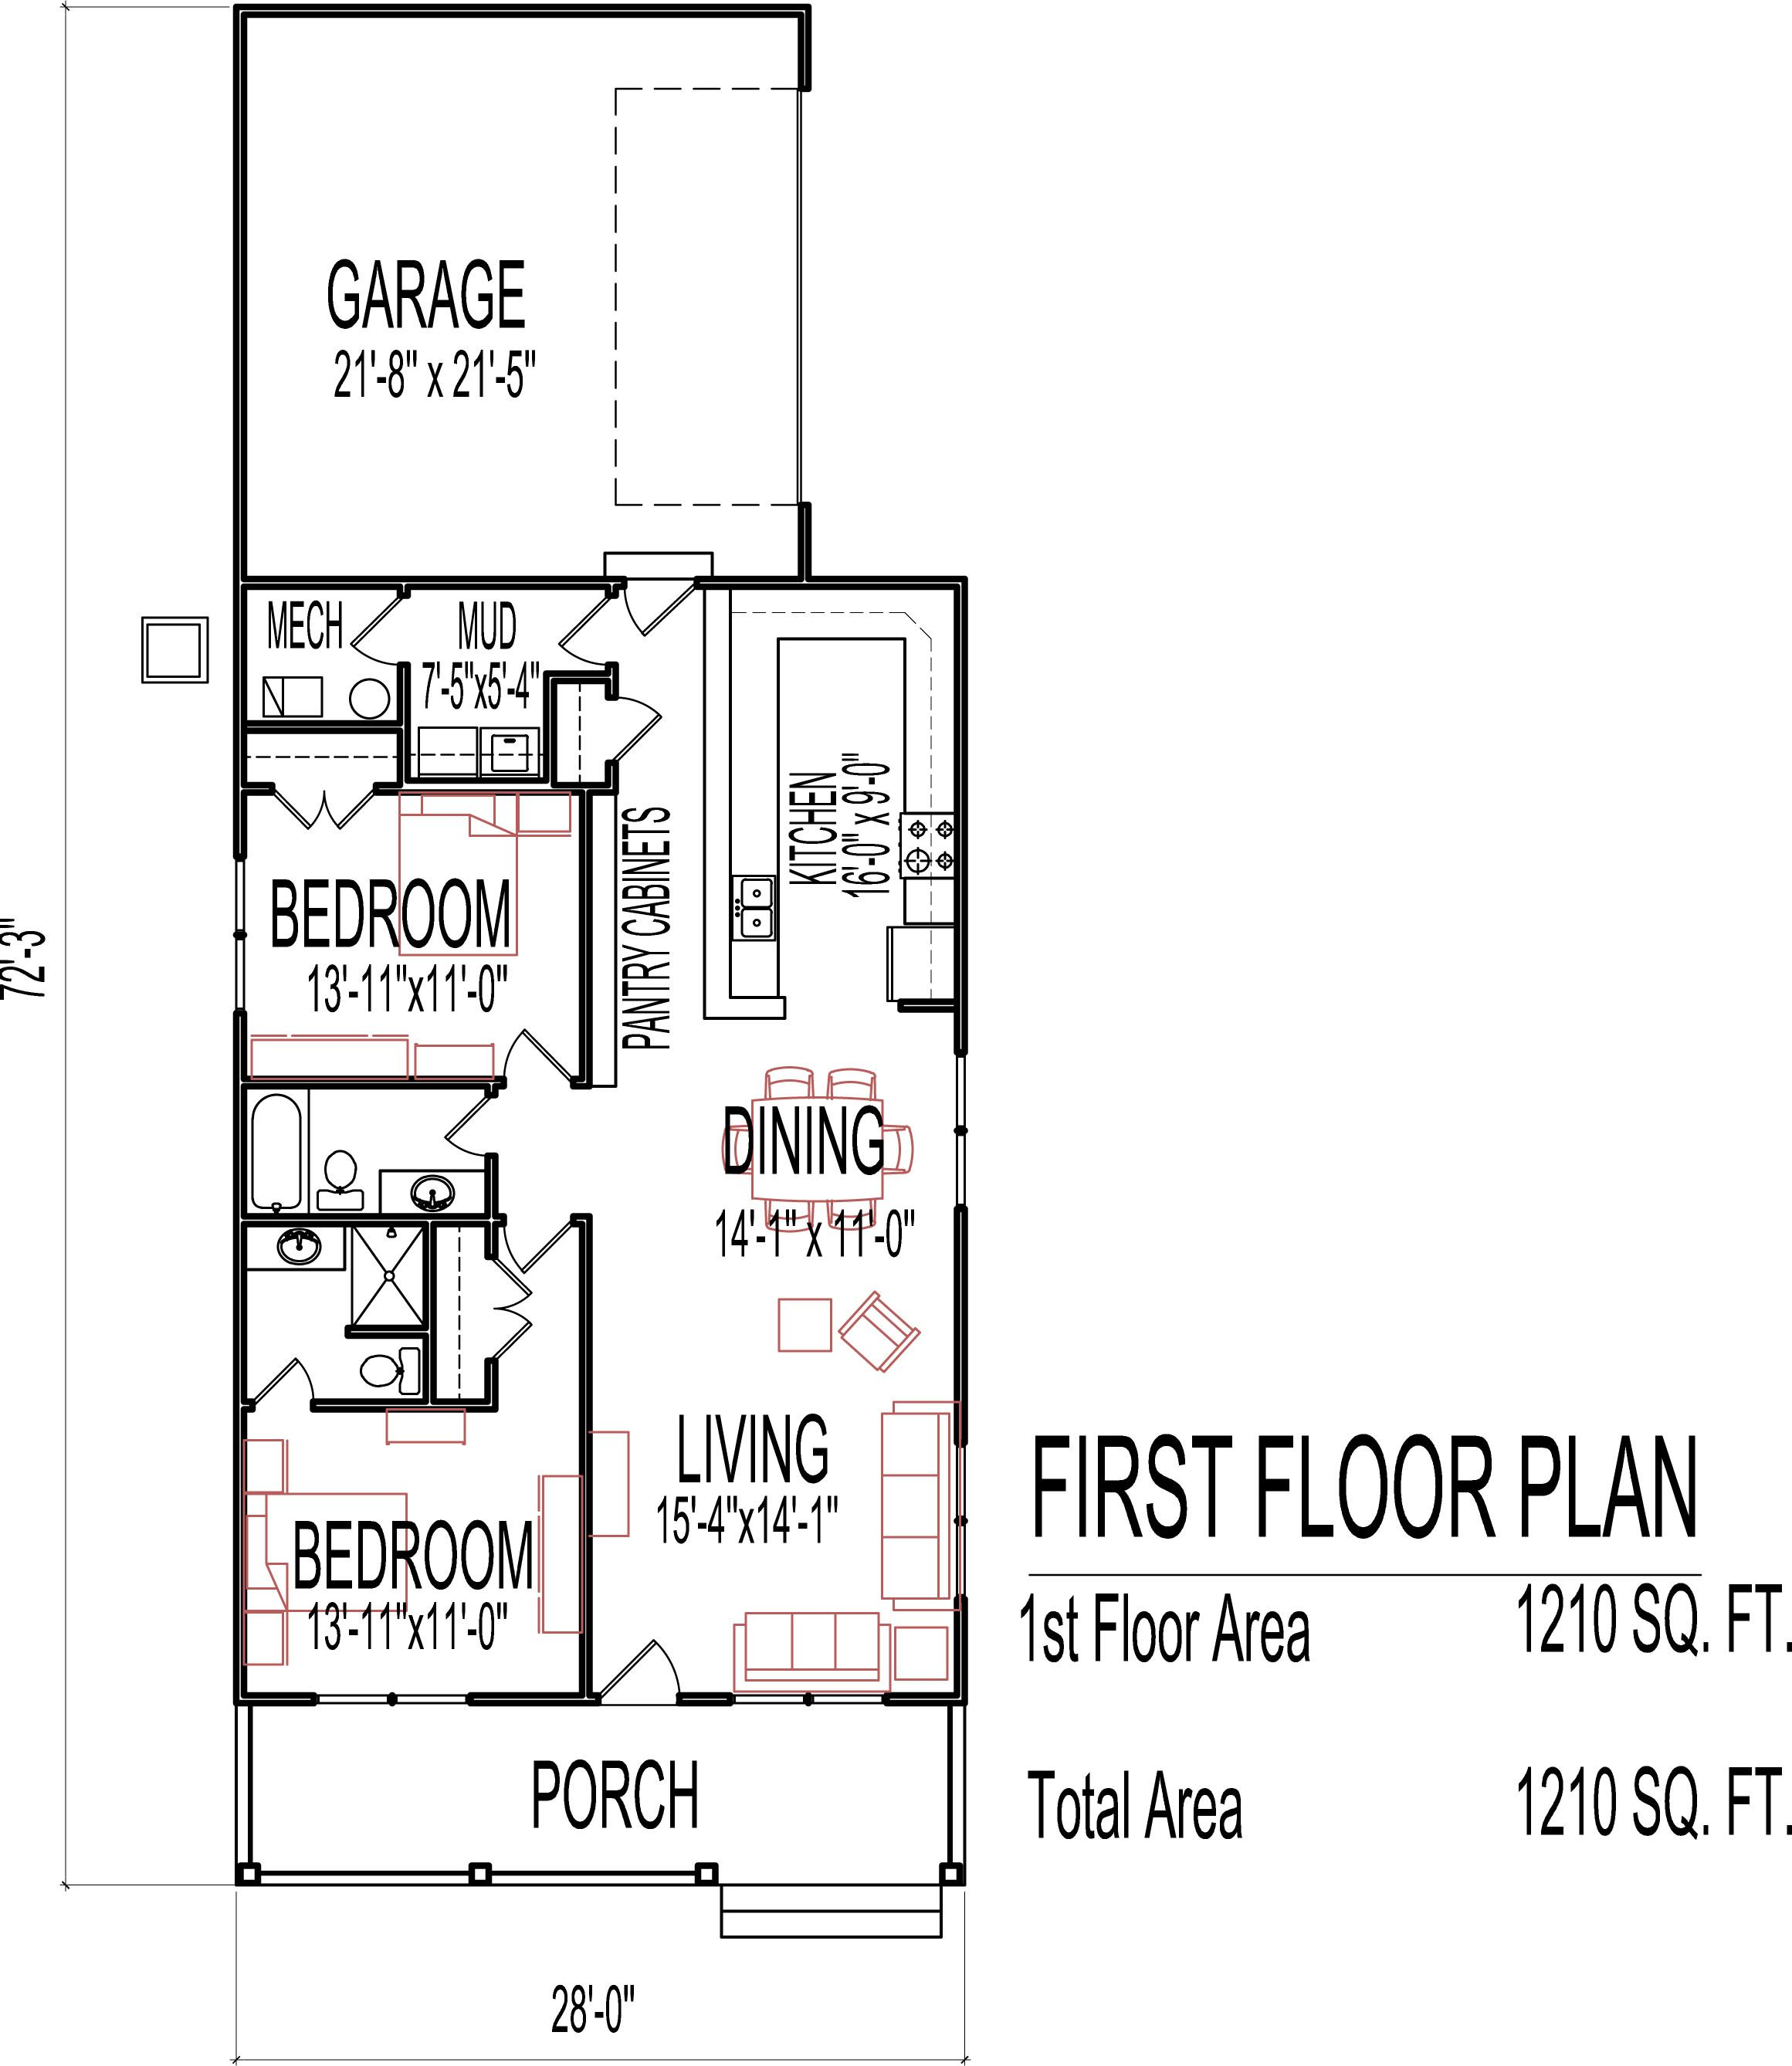 Small low cost economical 2 bedroom 2 bath 1200 sq ft 1 story home floor plans